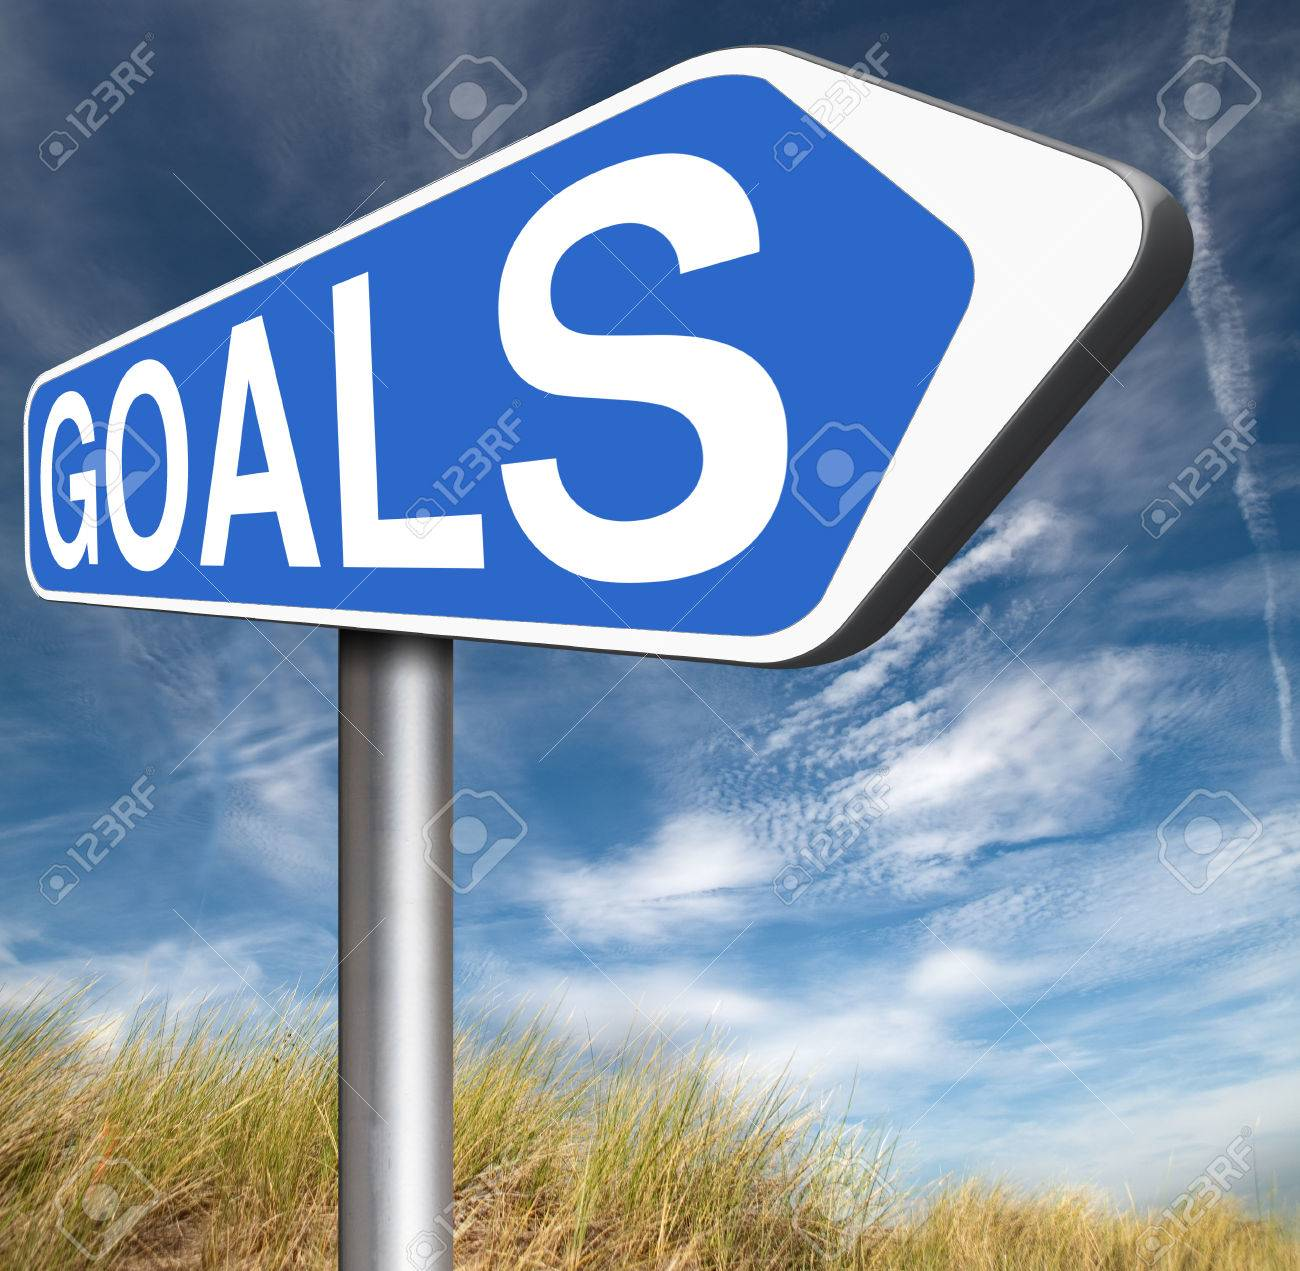 goals and ambition way to success guarantee to reach your goal stock photo goals and ambition way to success guarantee to reach your goal and go to the top